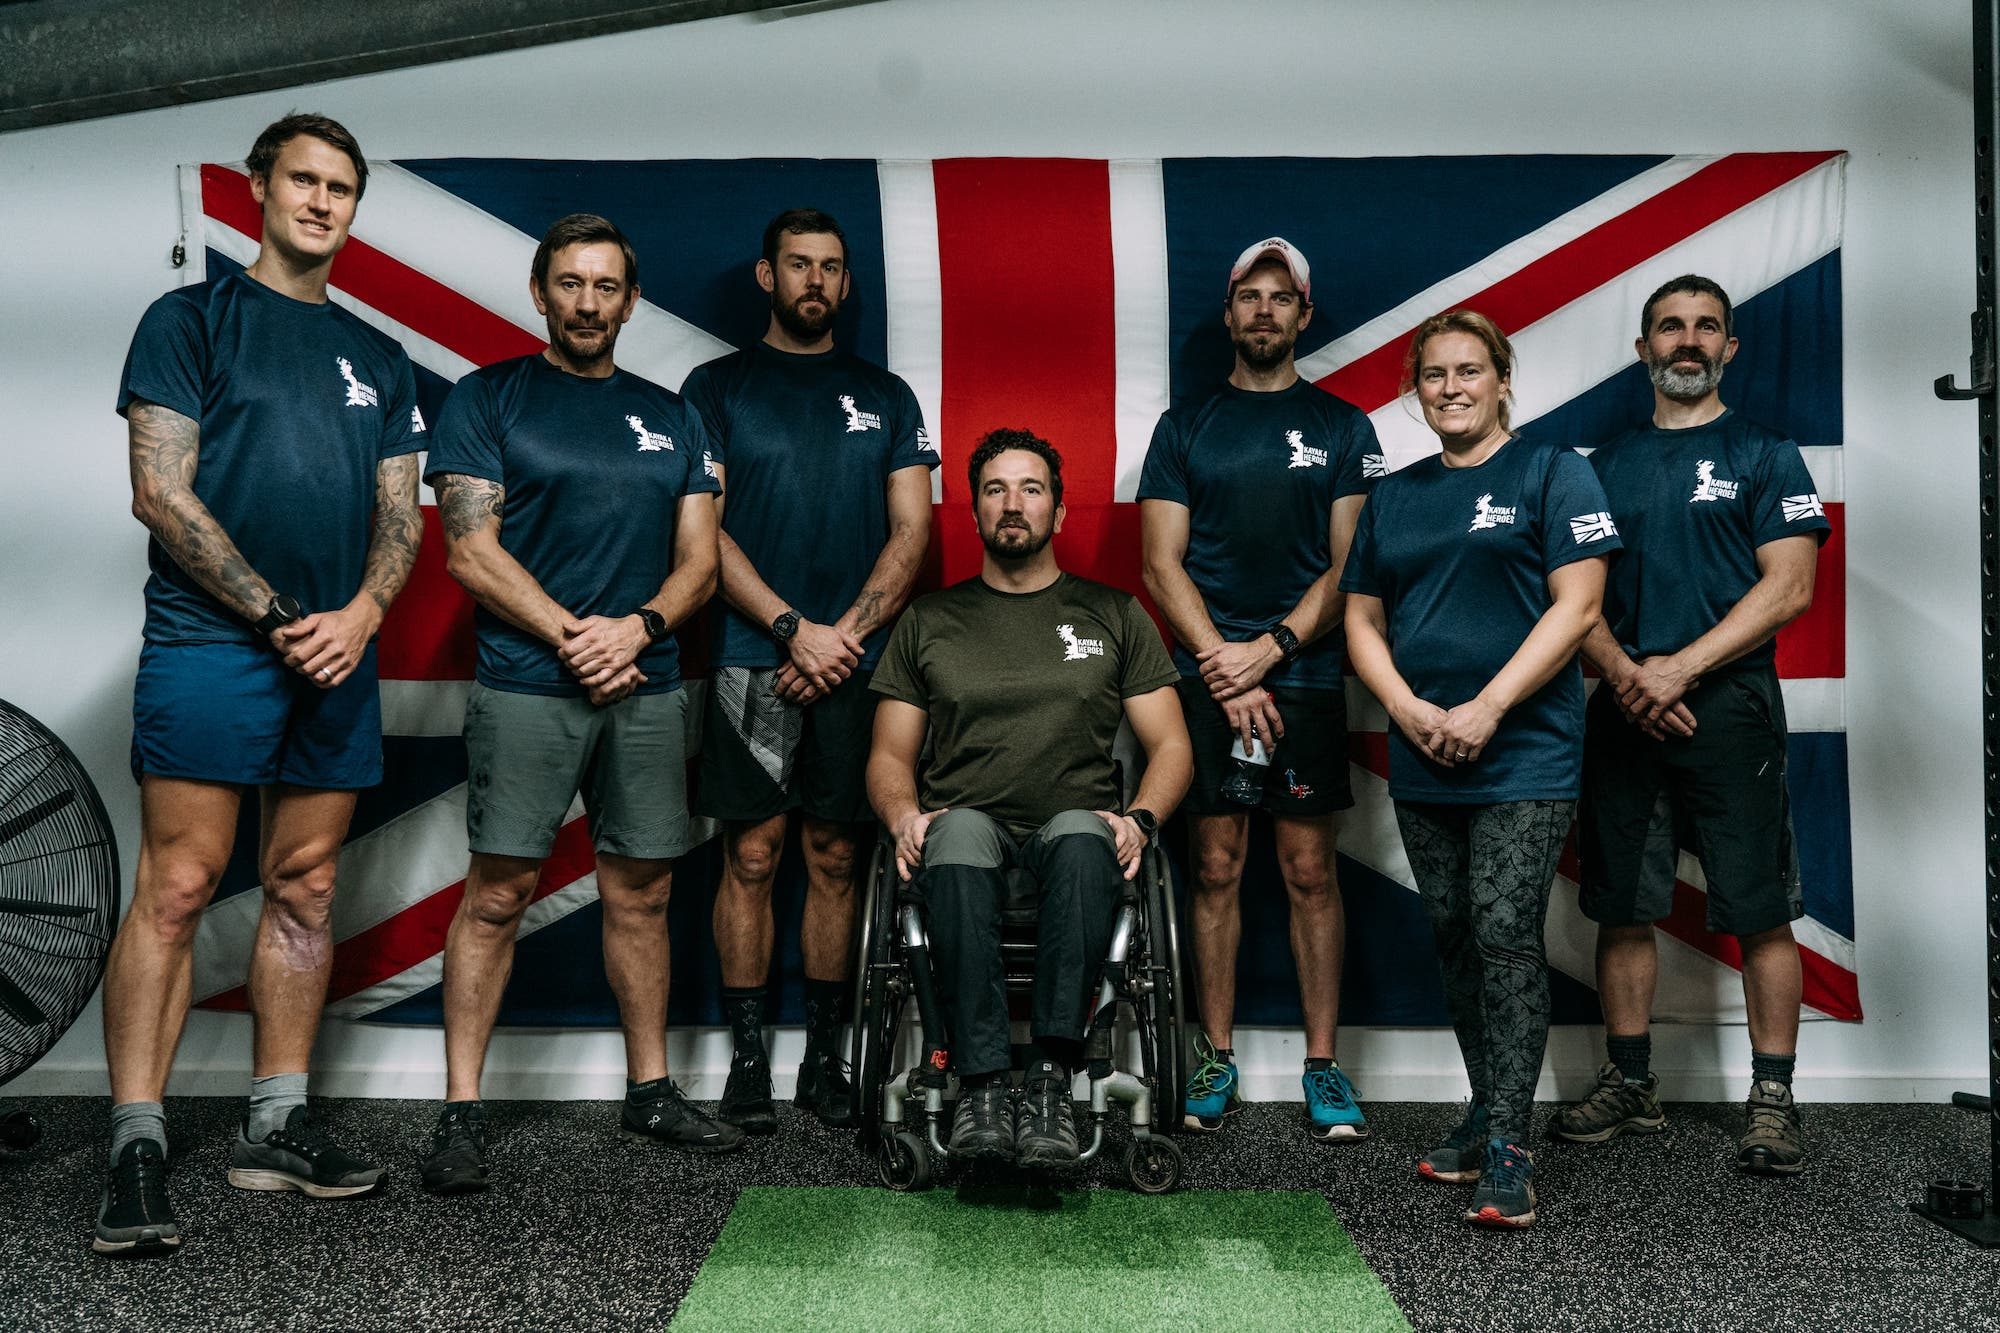 SAS Star Ollie Ollerton Mentors Disabled Ex military Team In A New World First Charity Challenge1